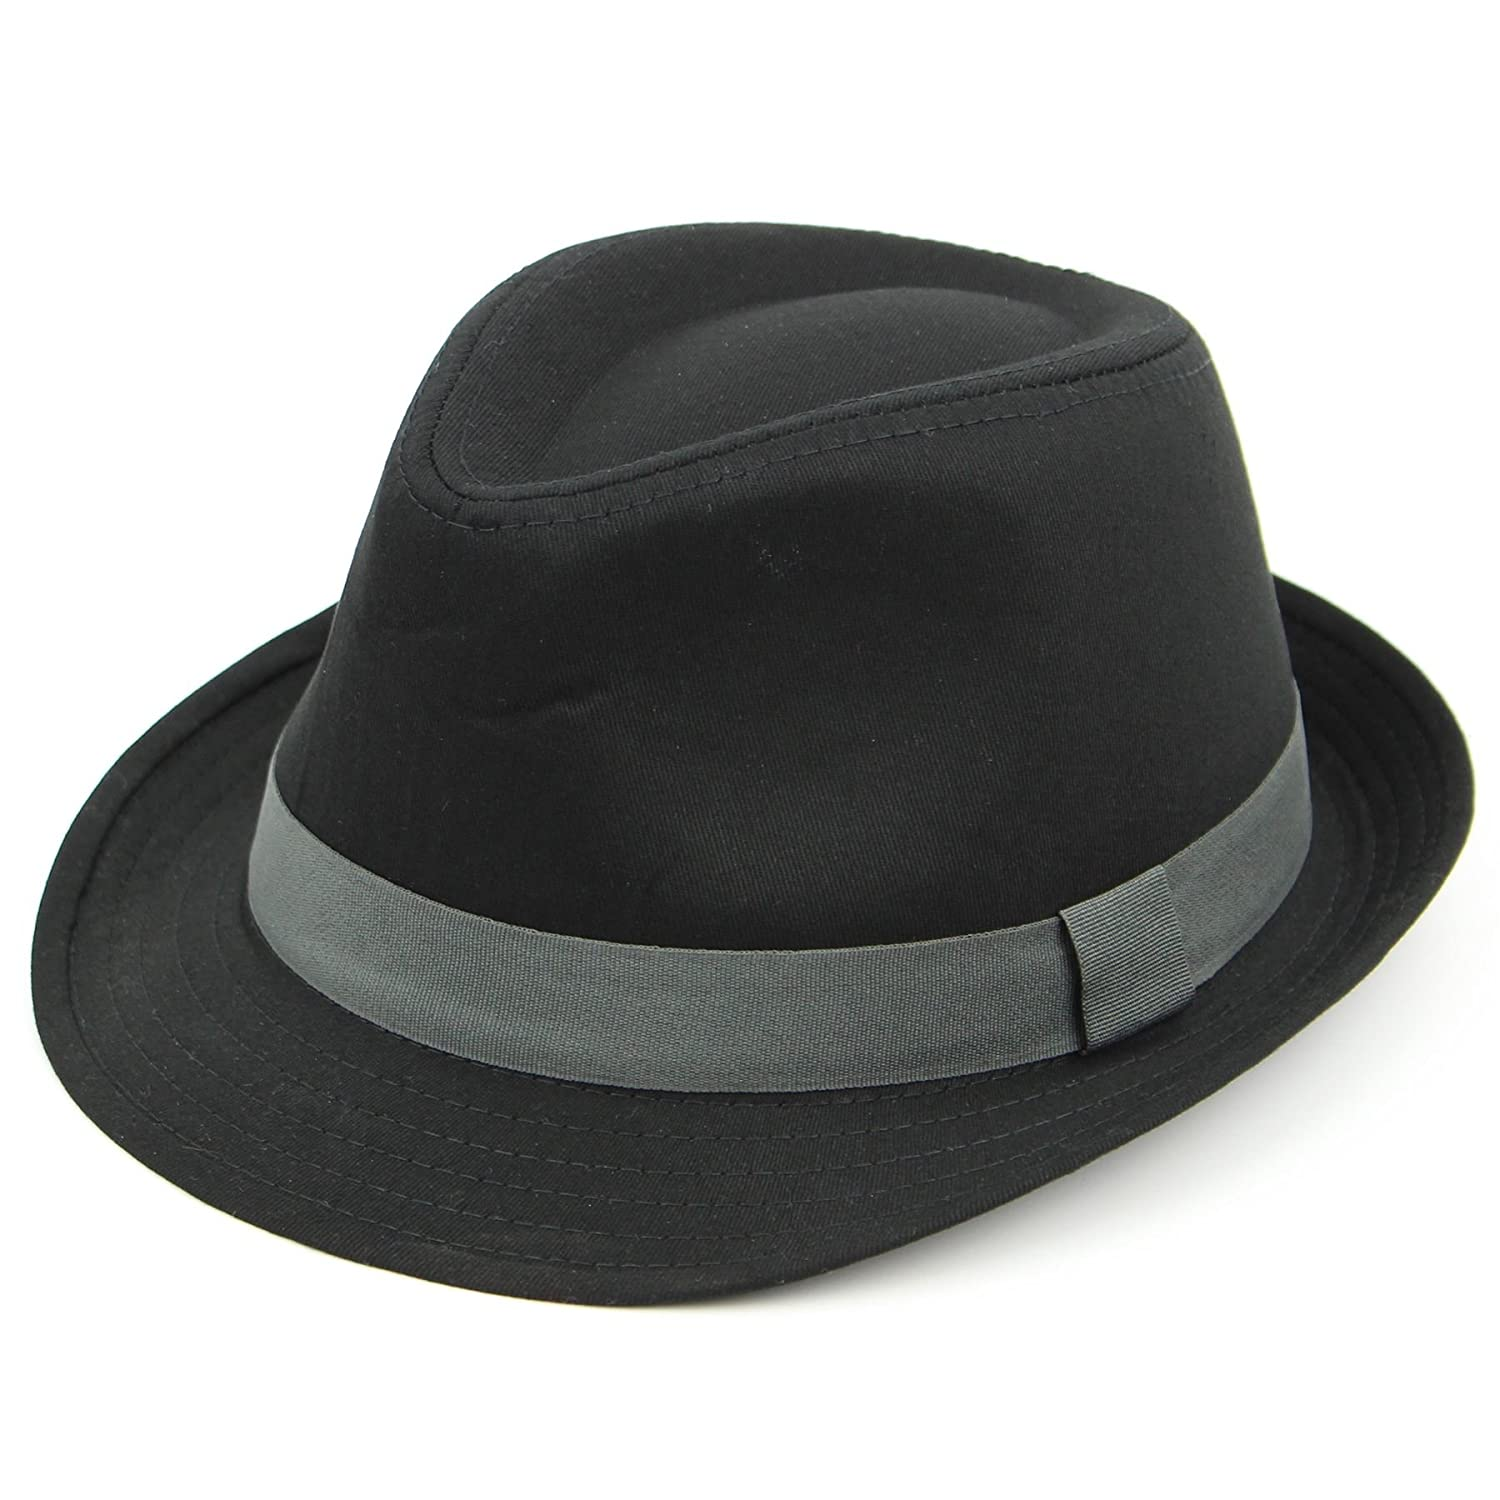 Cotton trilby hat black summer sun unisex grey band gangster